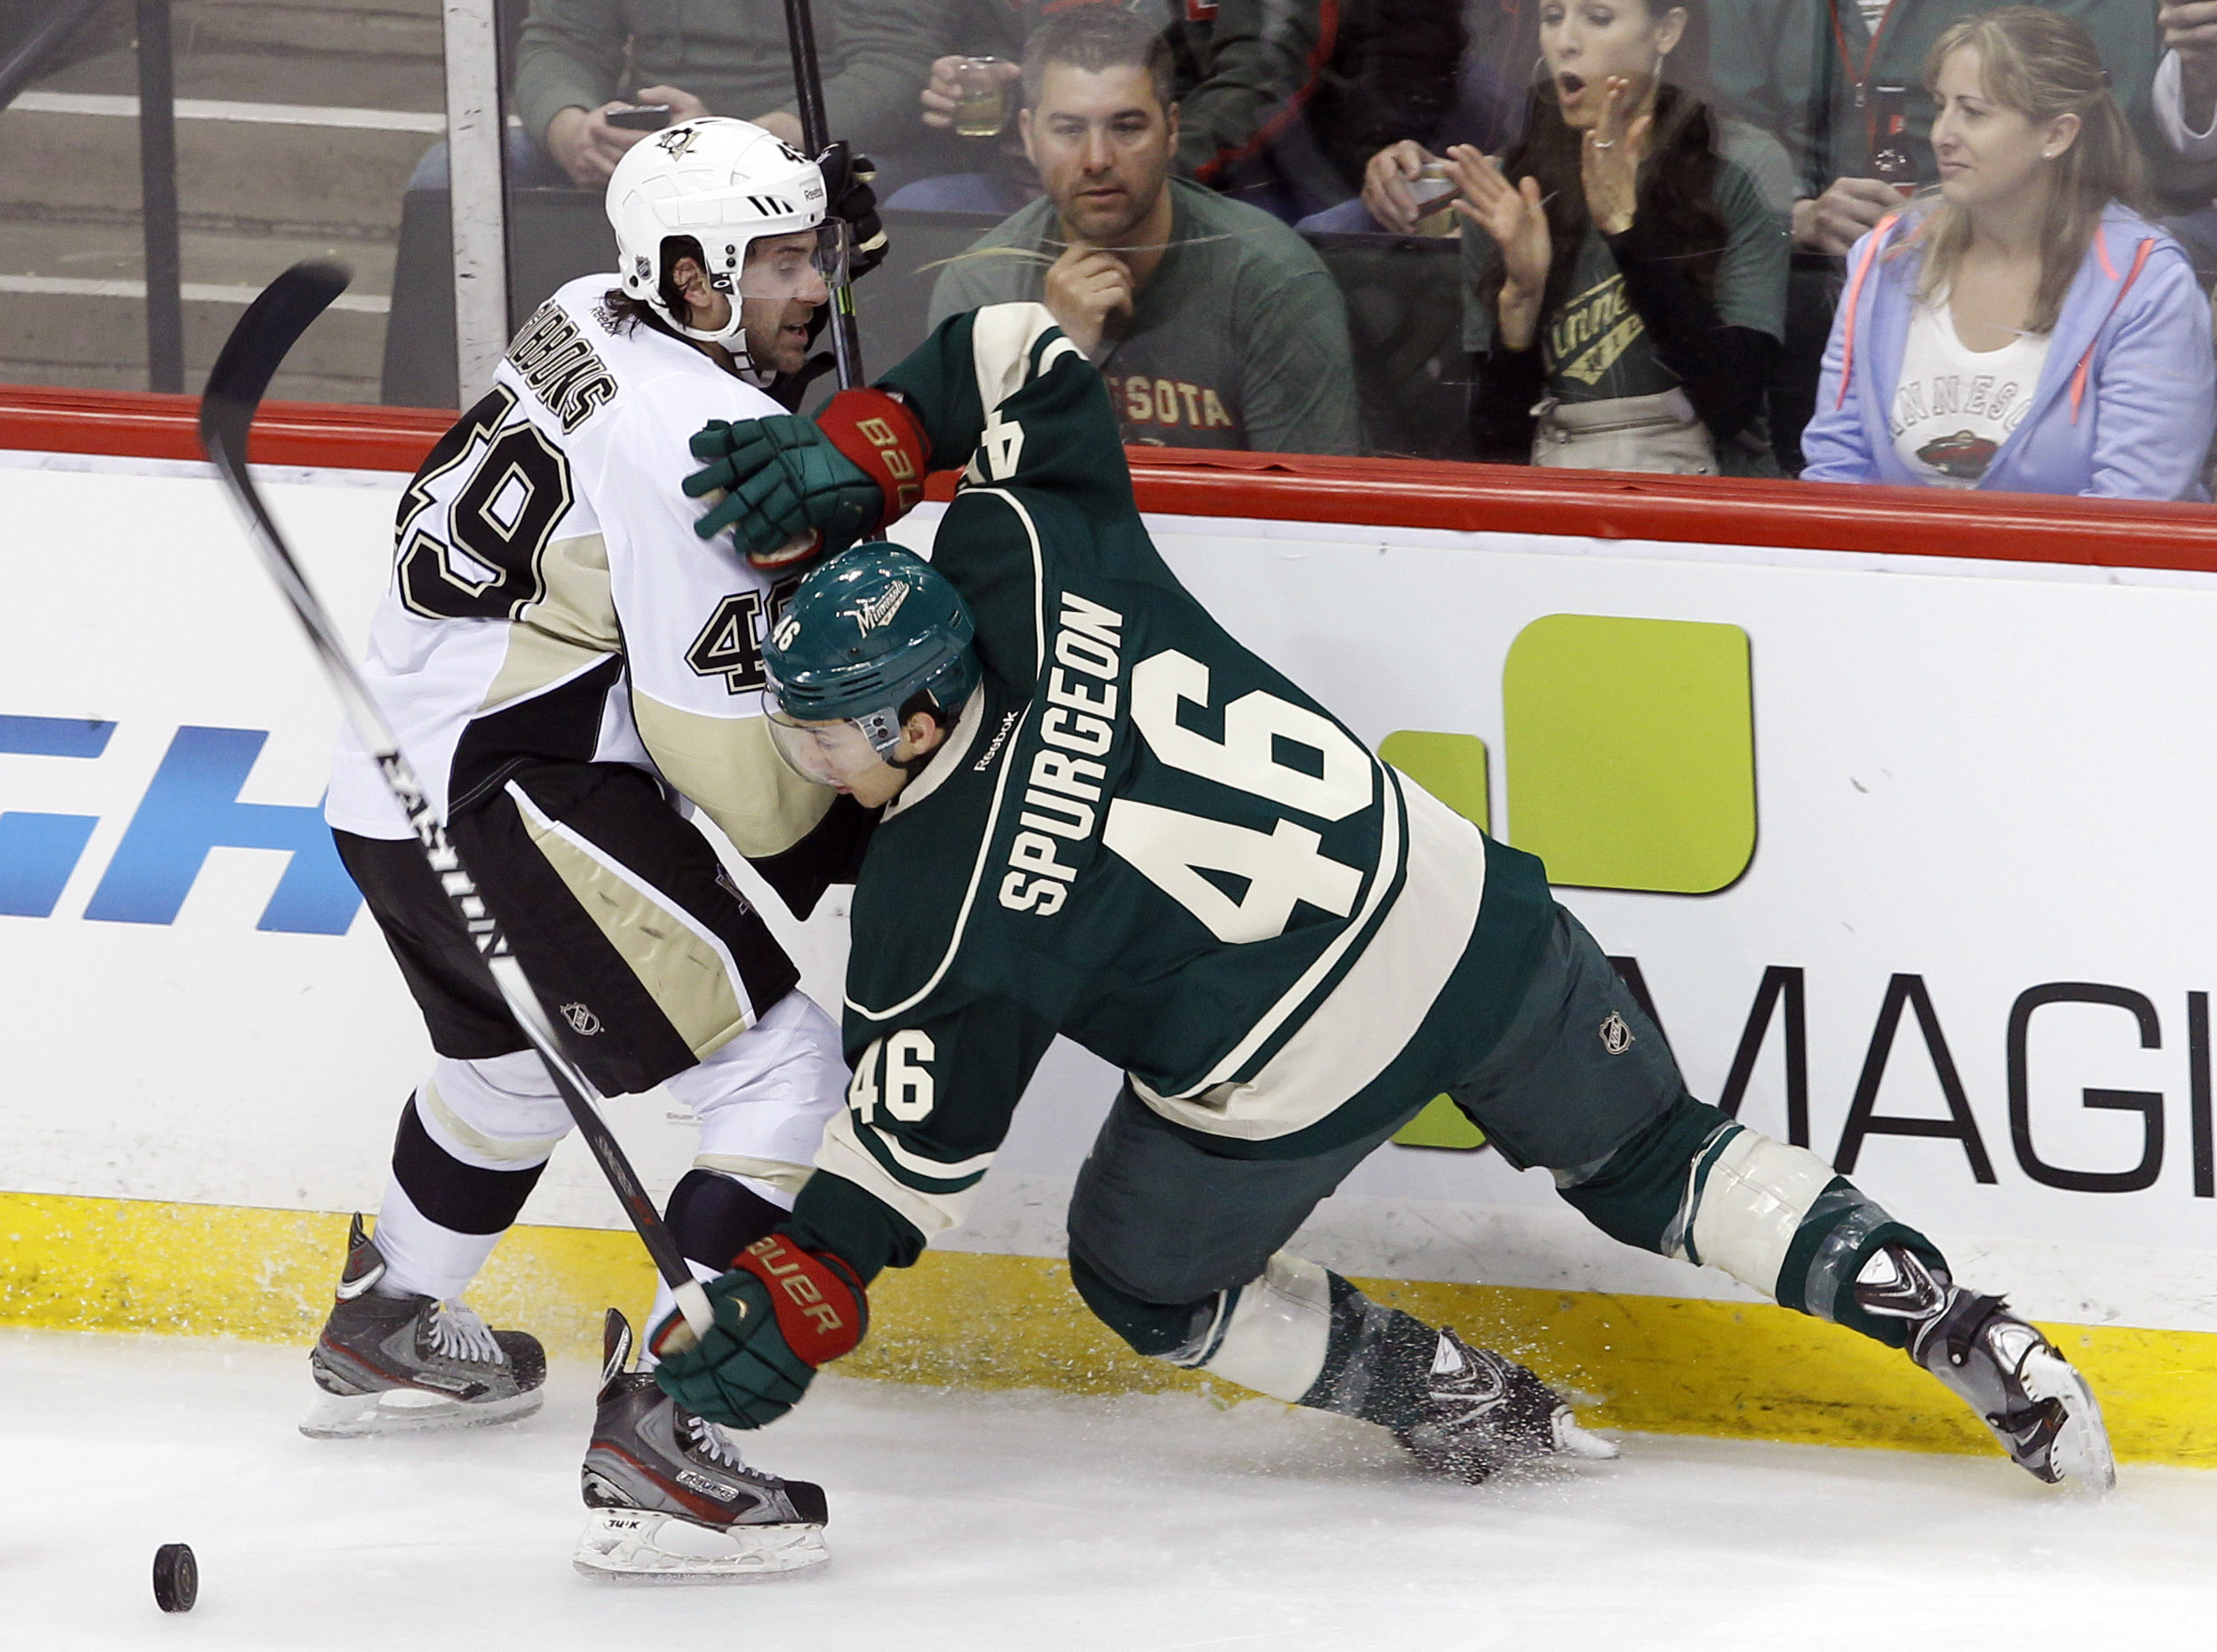 Minnesota Wild defenseman Jared Spurgeon (46) falls as he and Pittsburgh Penguins center Brian Gibbons (49) chase the puck during the first period of an NHL hockey game in St. Paul, Minn., Saturday, April 5, 2014